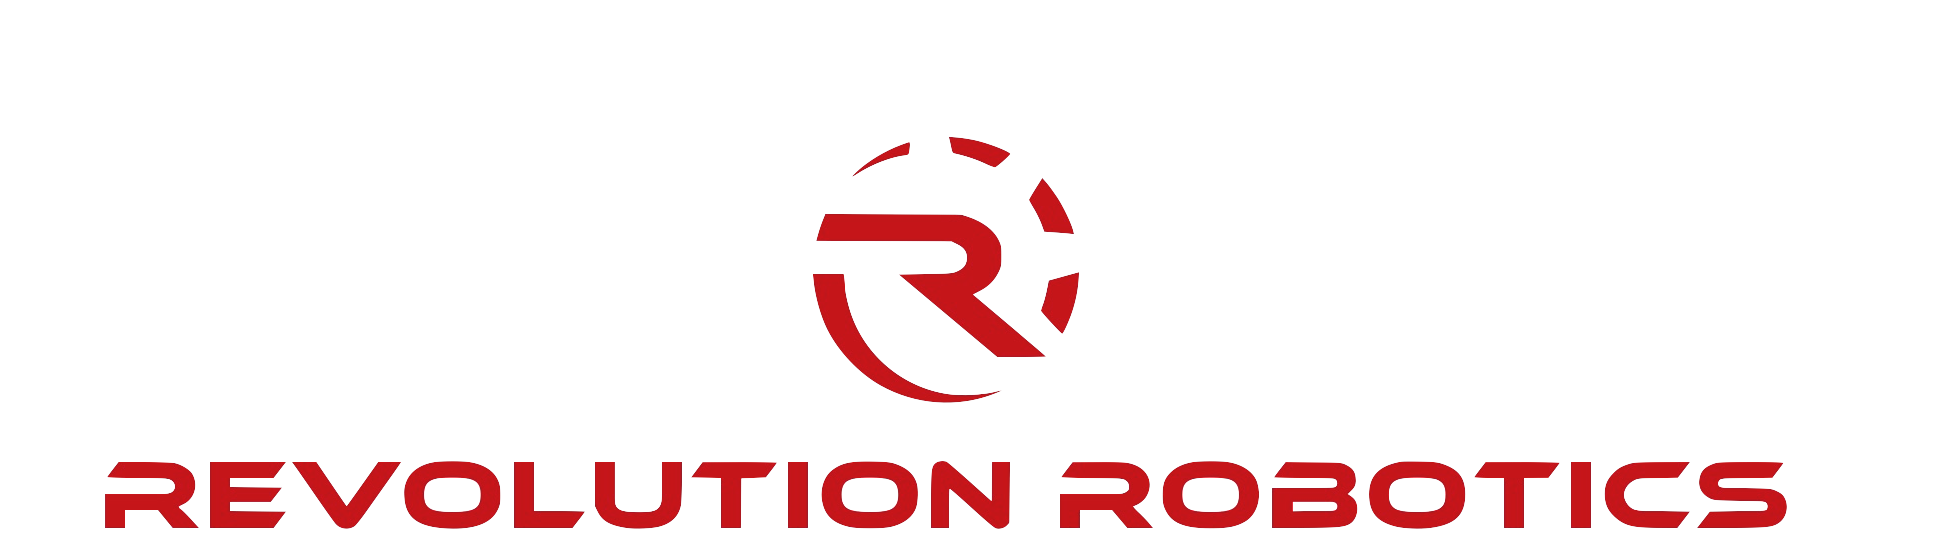 Revolution Robotics